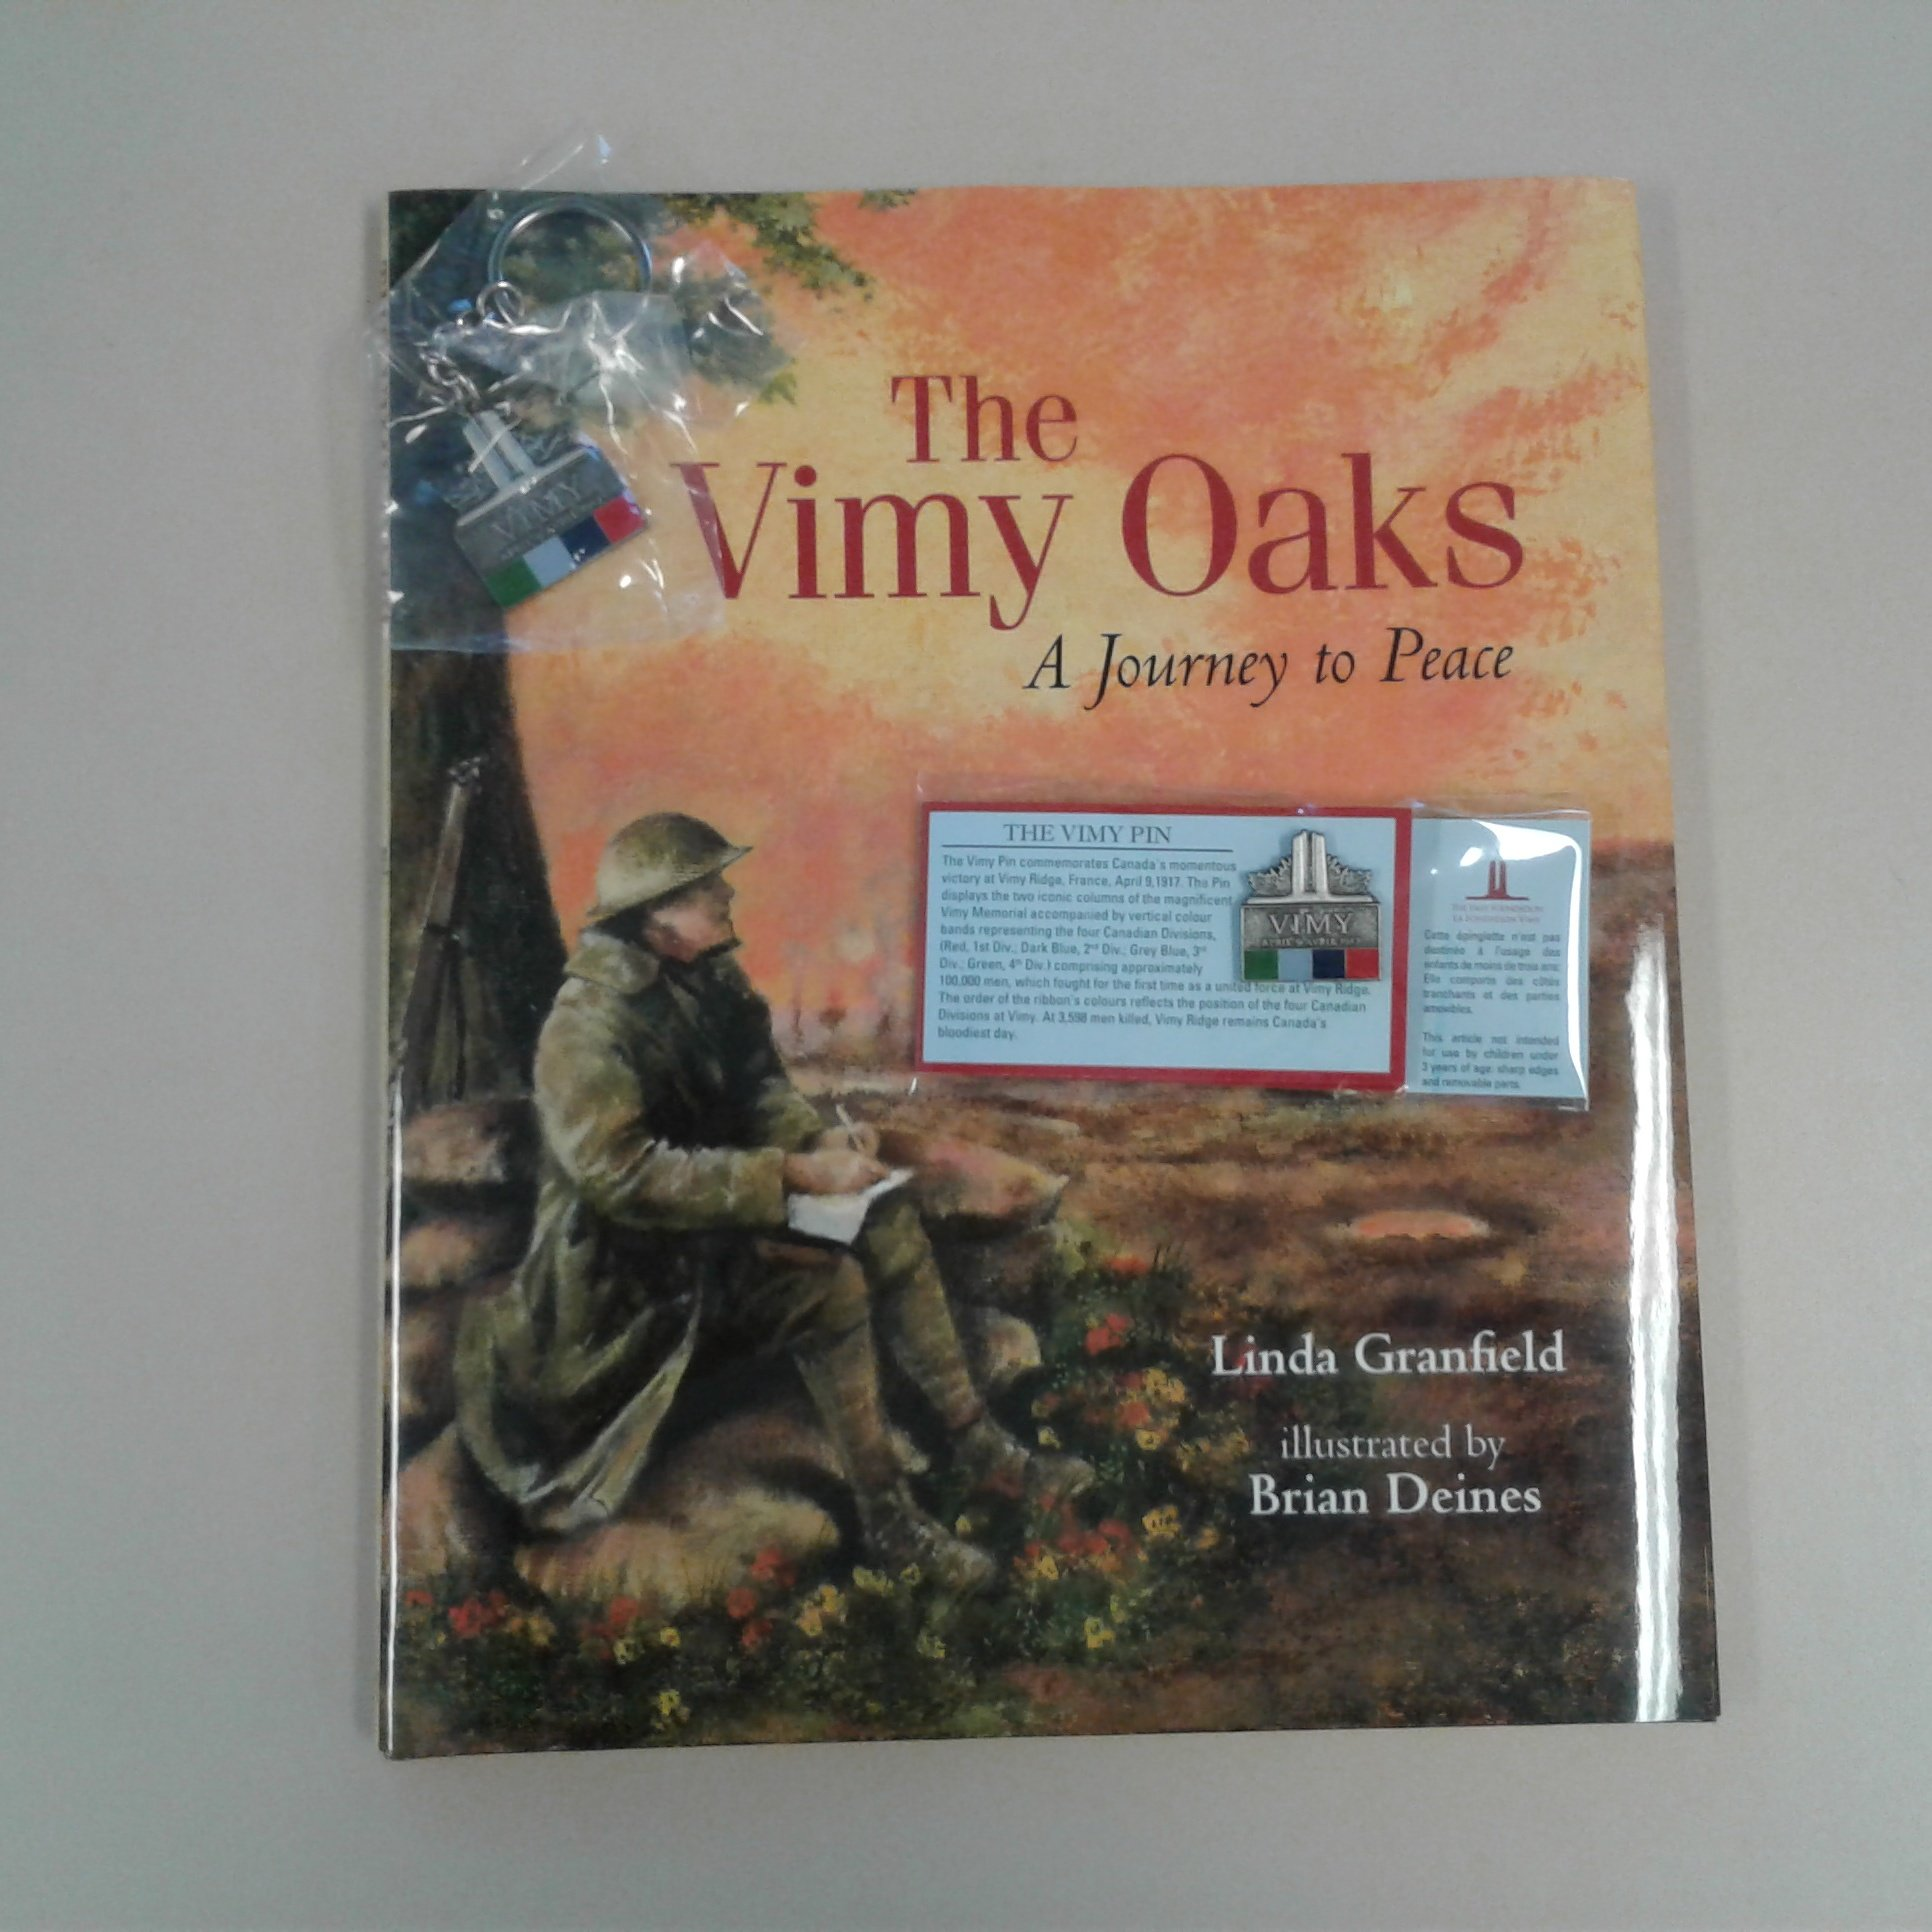 Congratulations to yesterday's  contest winner A.pasky who participated through Instagram and wins a Vimy pin, keychain and Vimy Oaks book https://t.co/0bqesTYZQO